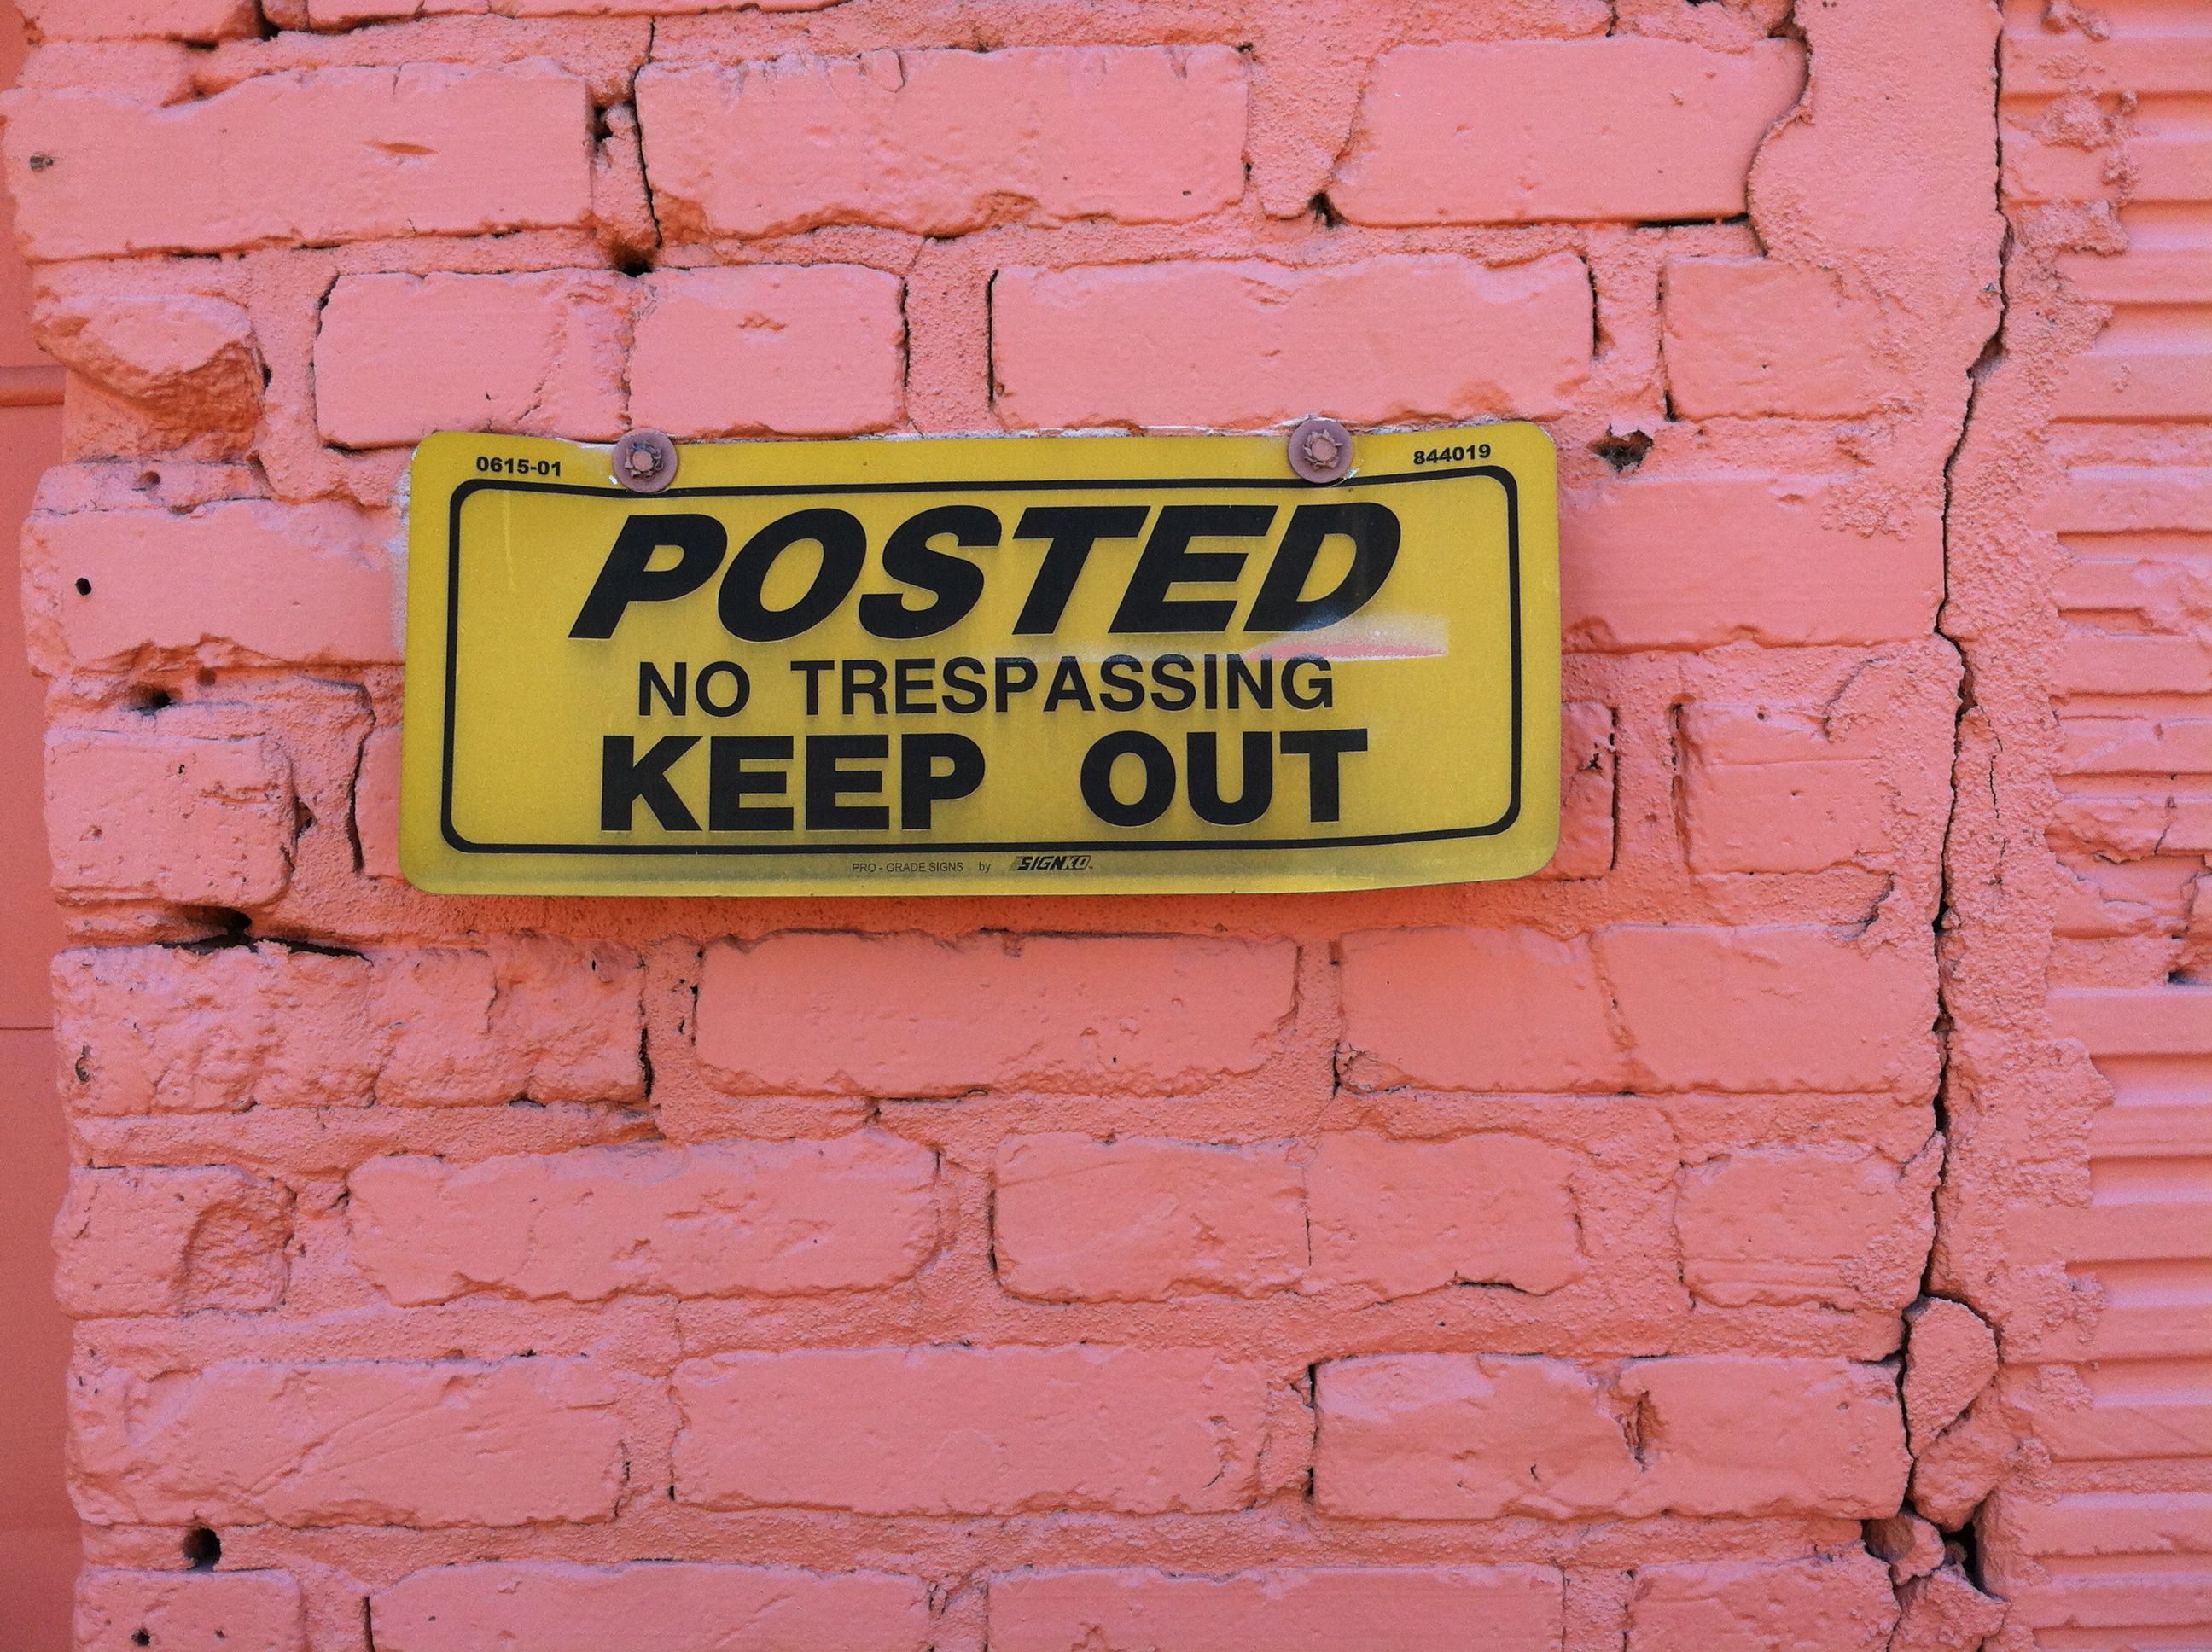 Graffiti wall atlanta -  Posted Keep Out Sign On Pink Wall Along The Atlanta Beltline